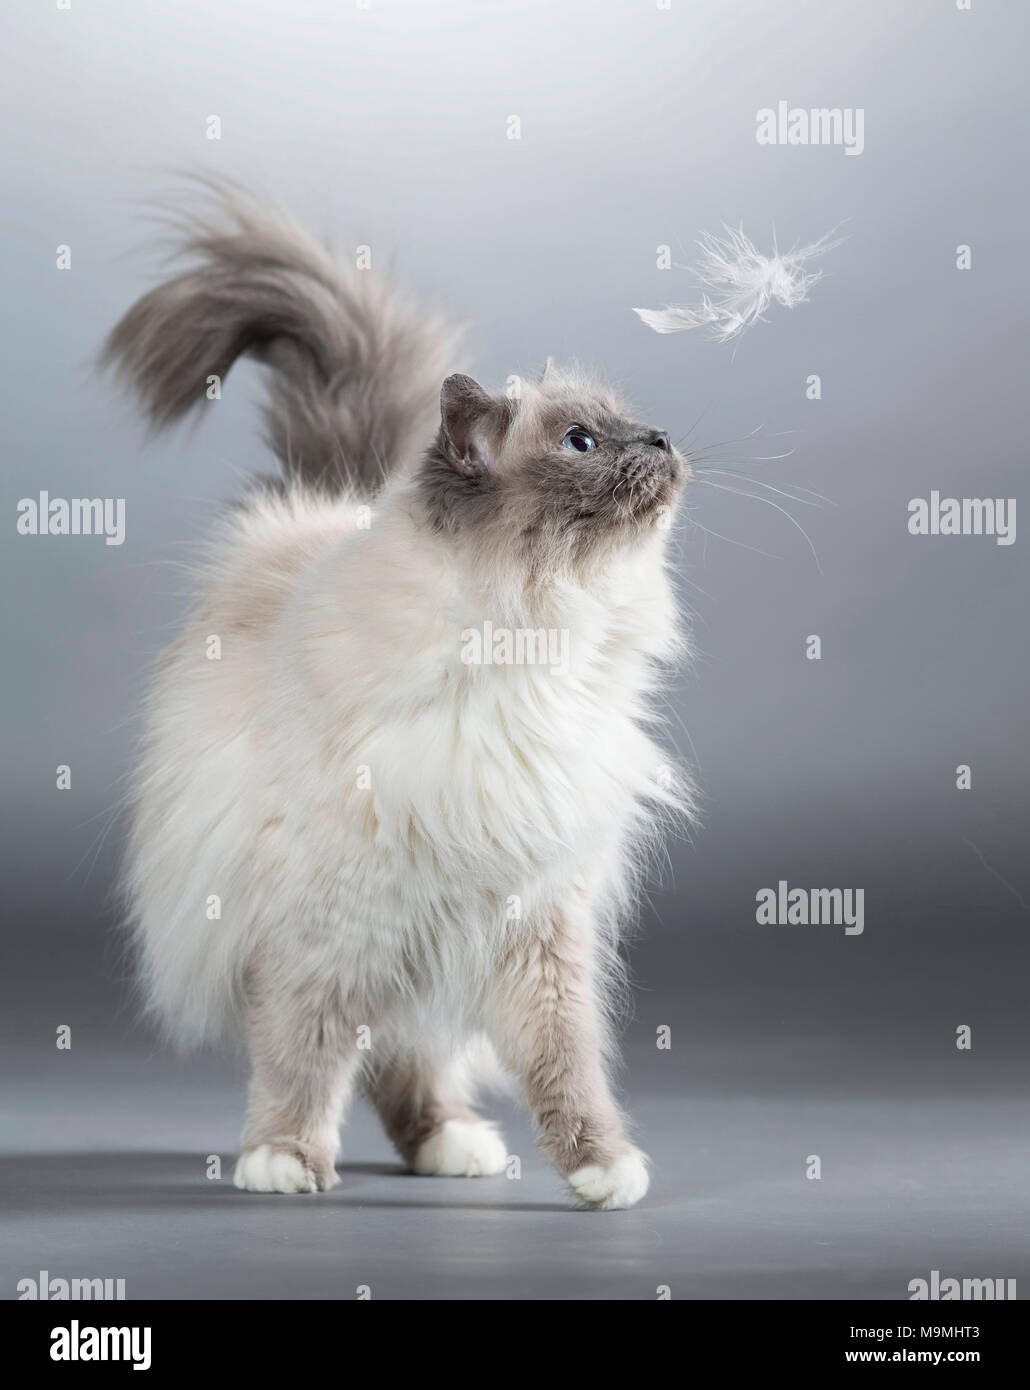 Sacred cat of Burma. Adult cat watching feather falling down. Studio picture against a gray background. Germany - Stock Image